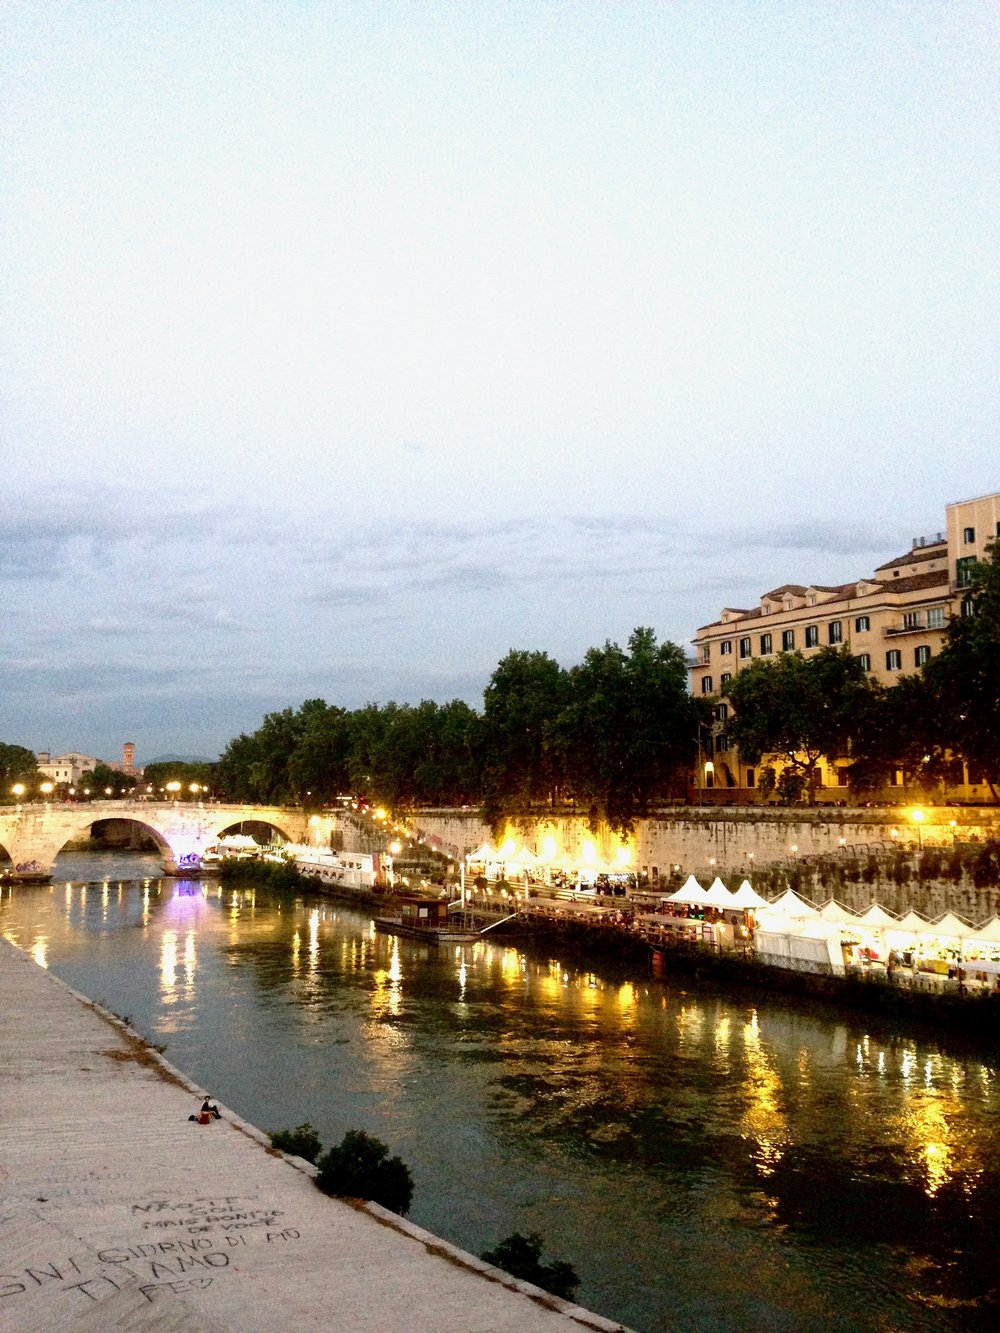 walk along the river in Rome:  good activity between meals.